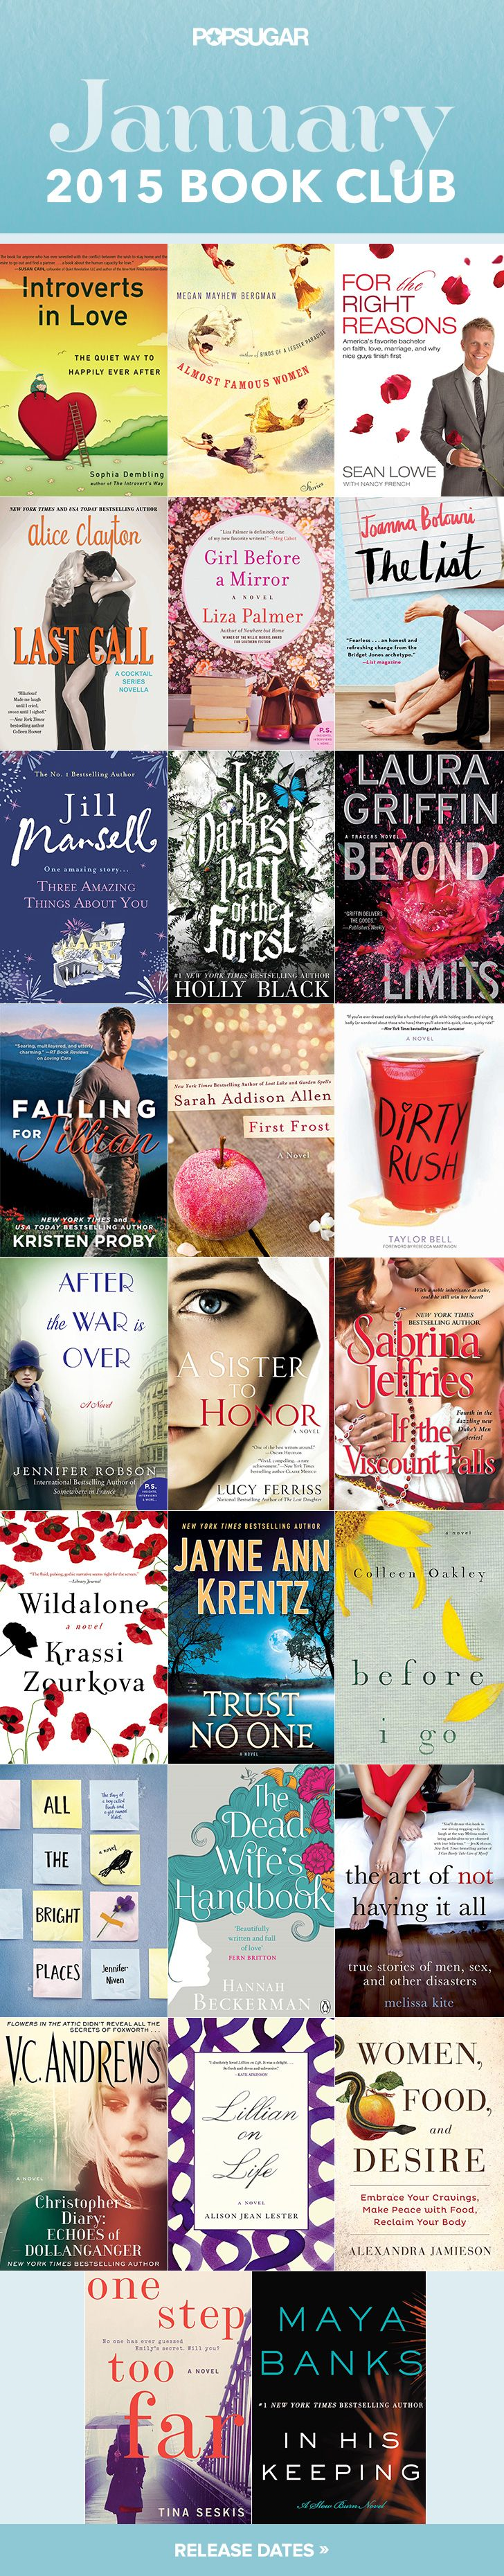 *Escape the January Cold With These 26 Hot Romantic Book Picks